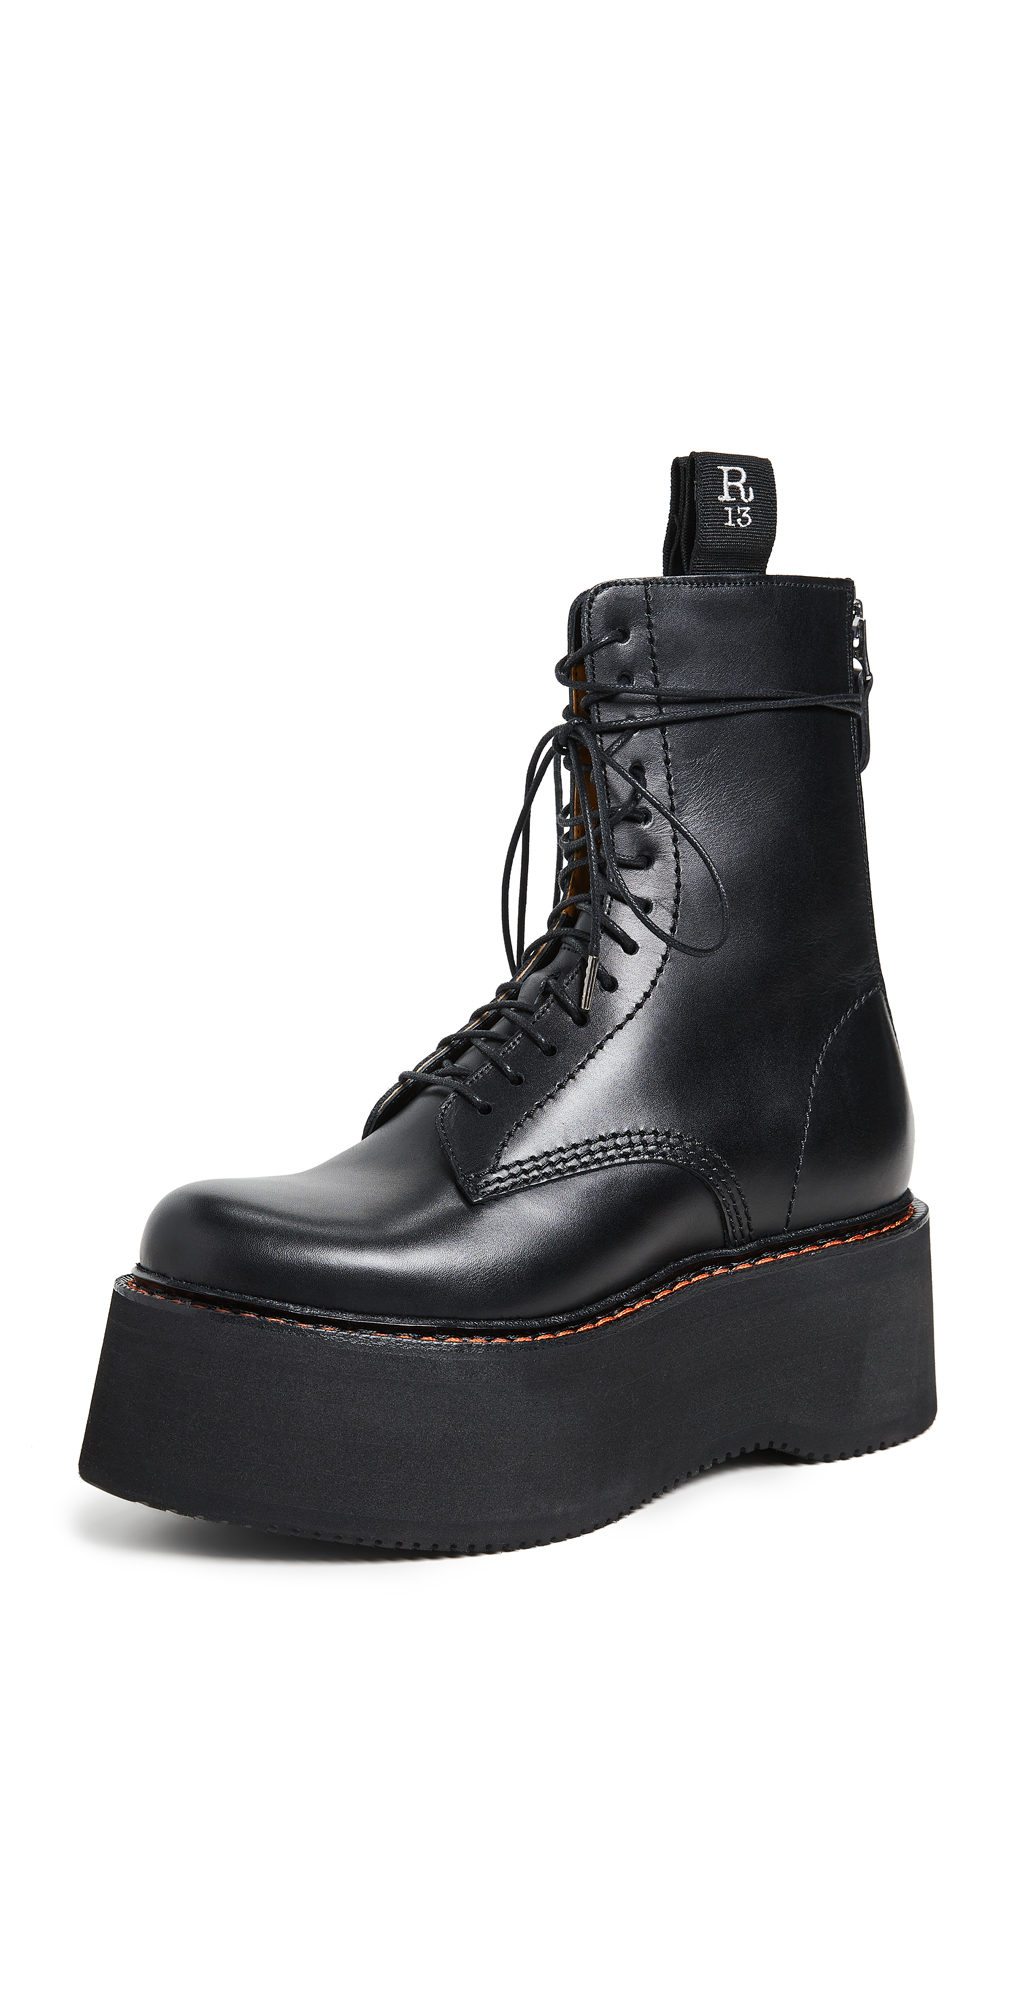 R13 Combat Stack Boots